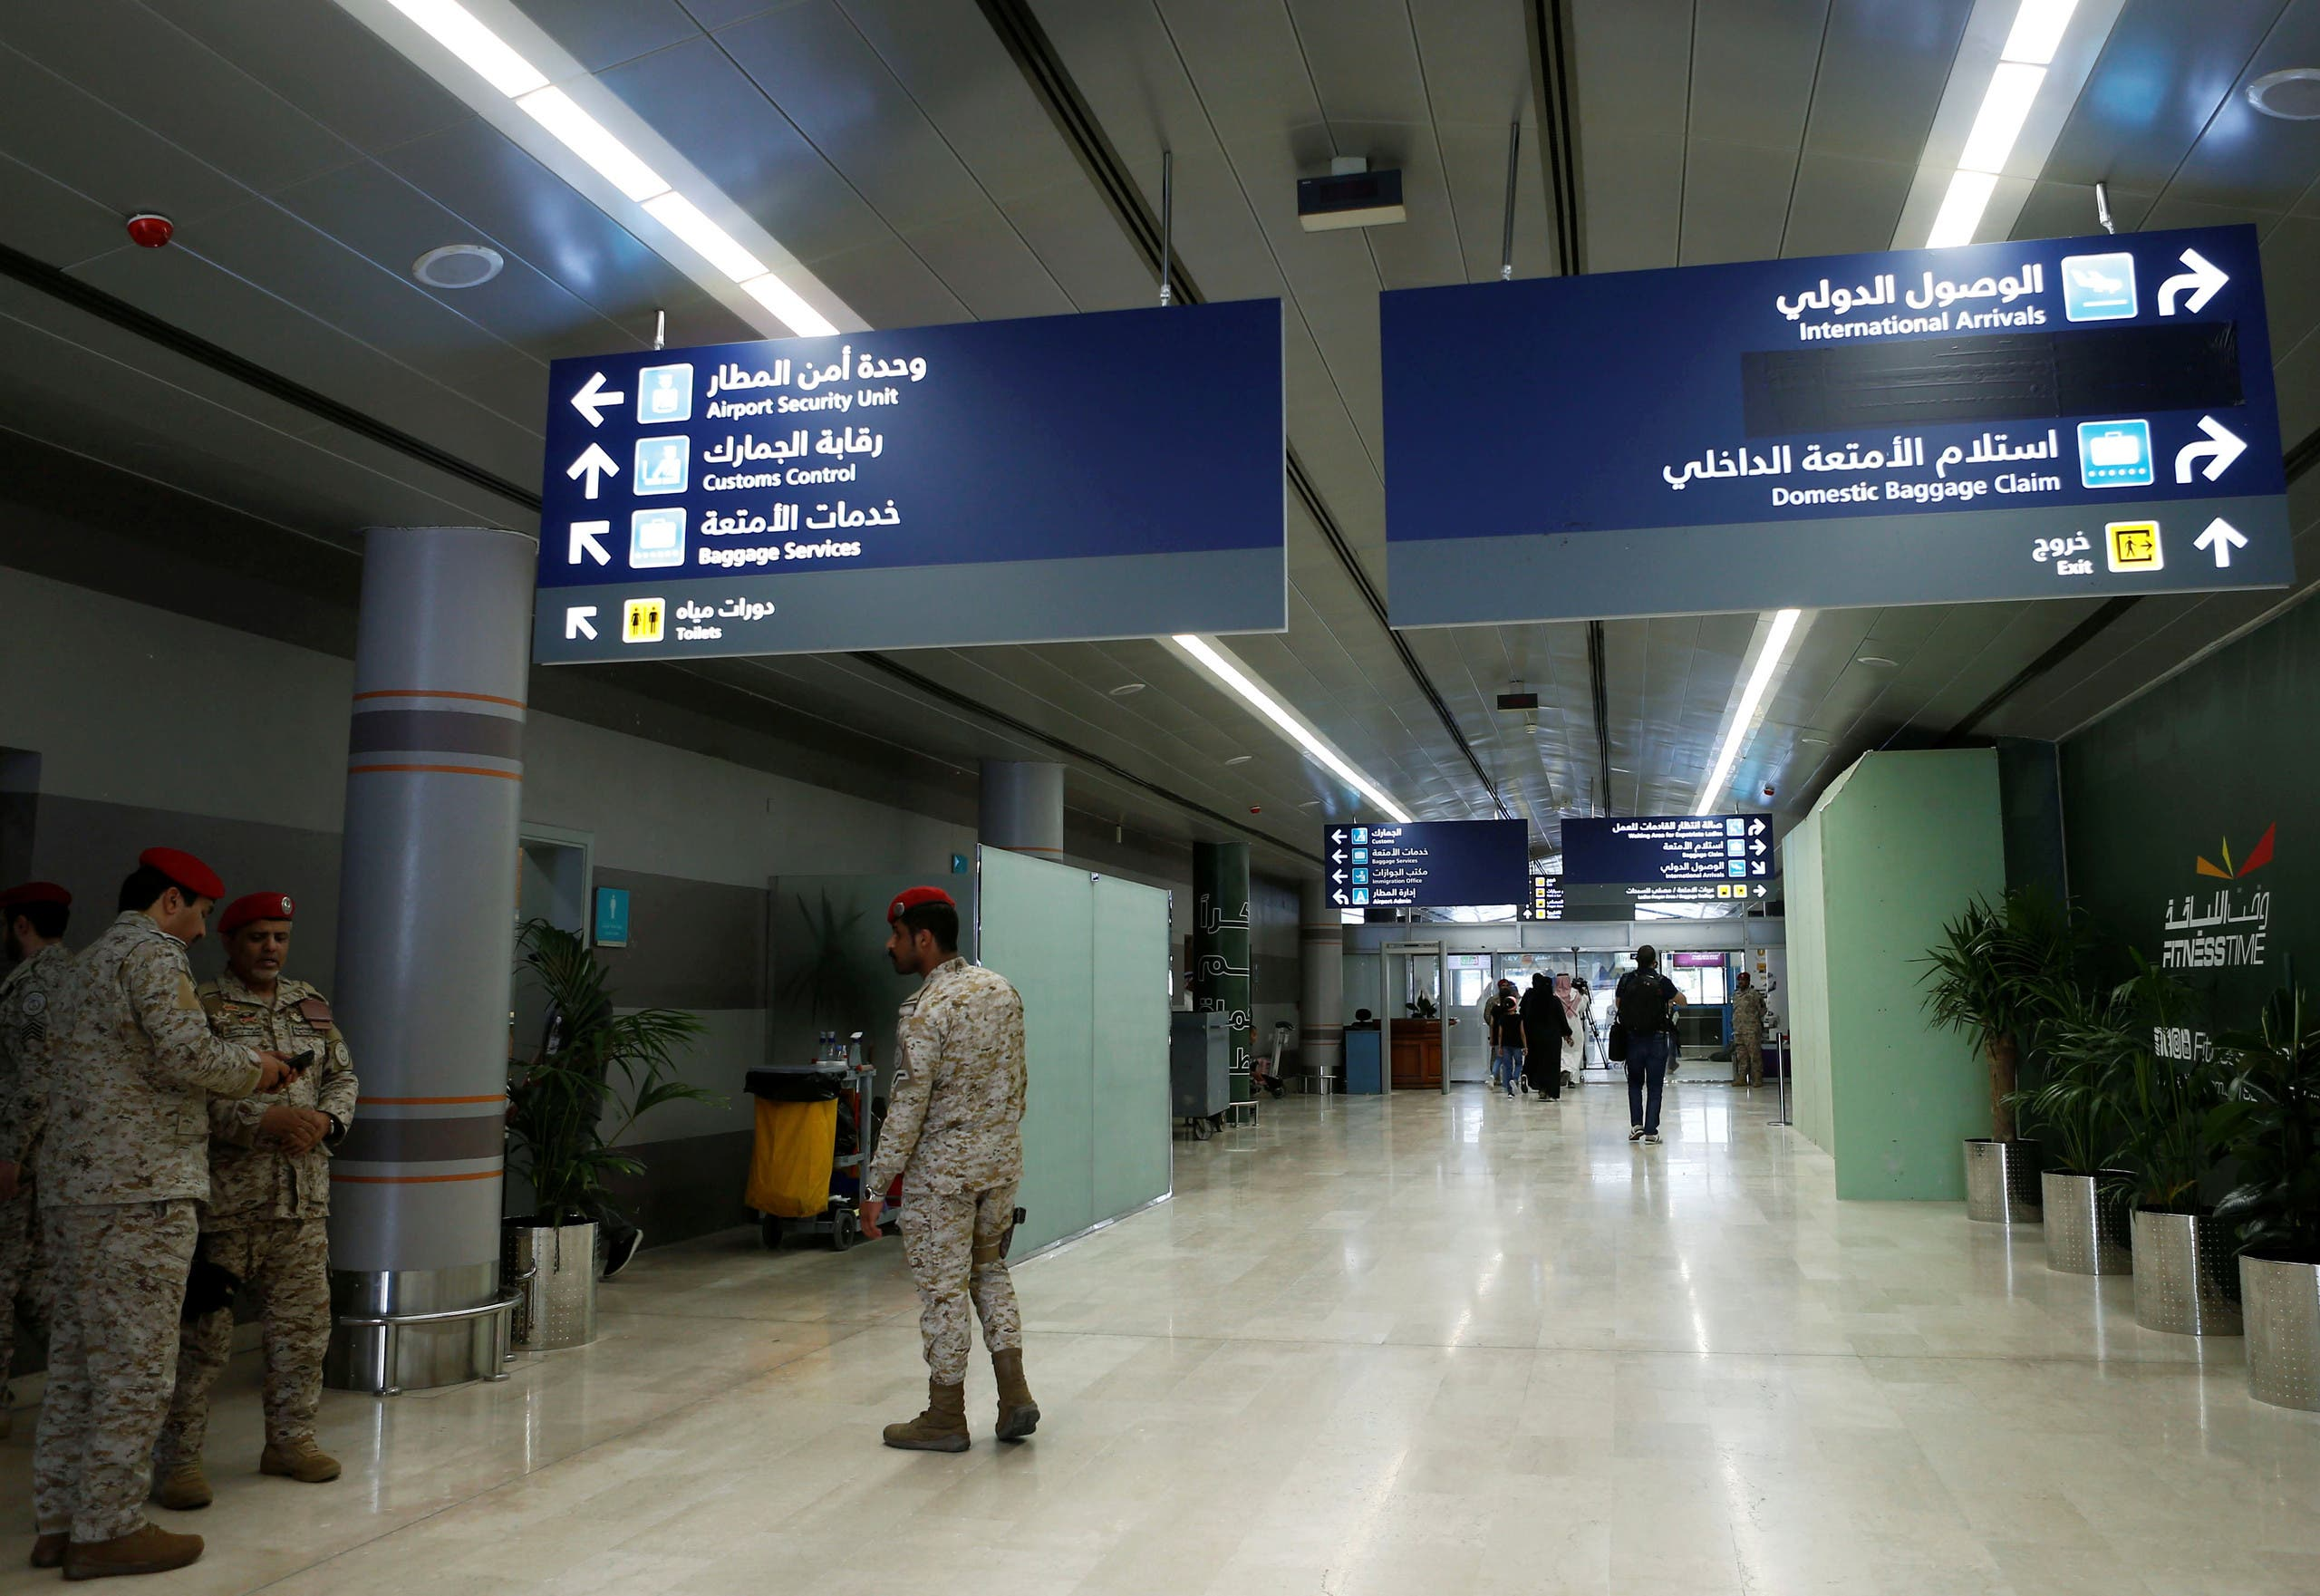 Saudi security officers are seen at Saudi Arabia's Abha airport, after it was attacked by Yemen's Houthi group in Abha. (File photo: Reuters)